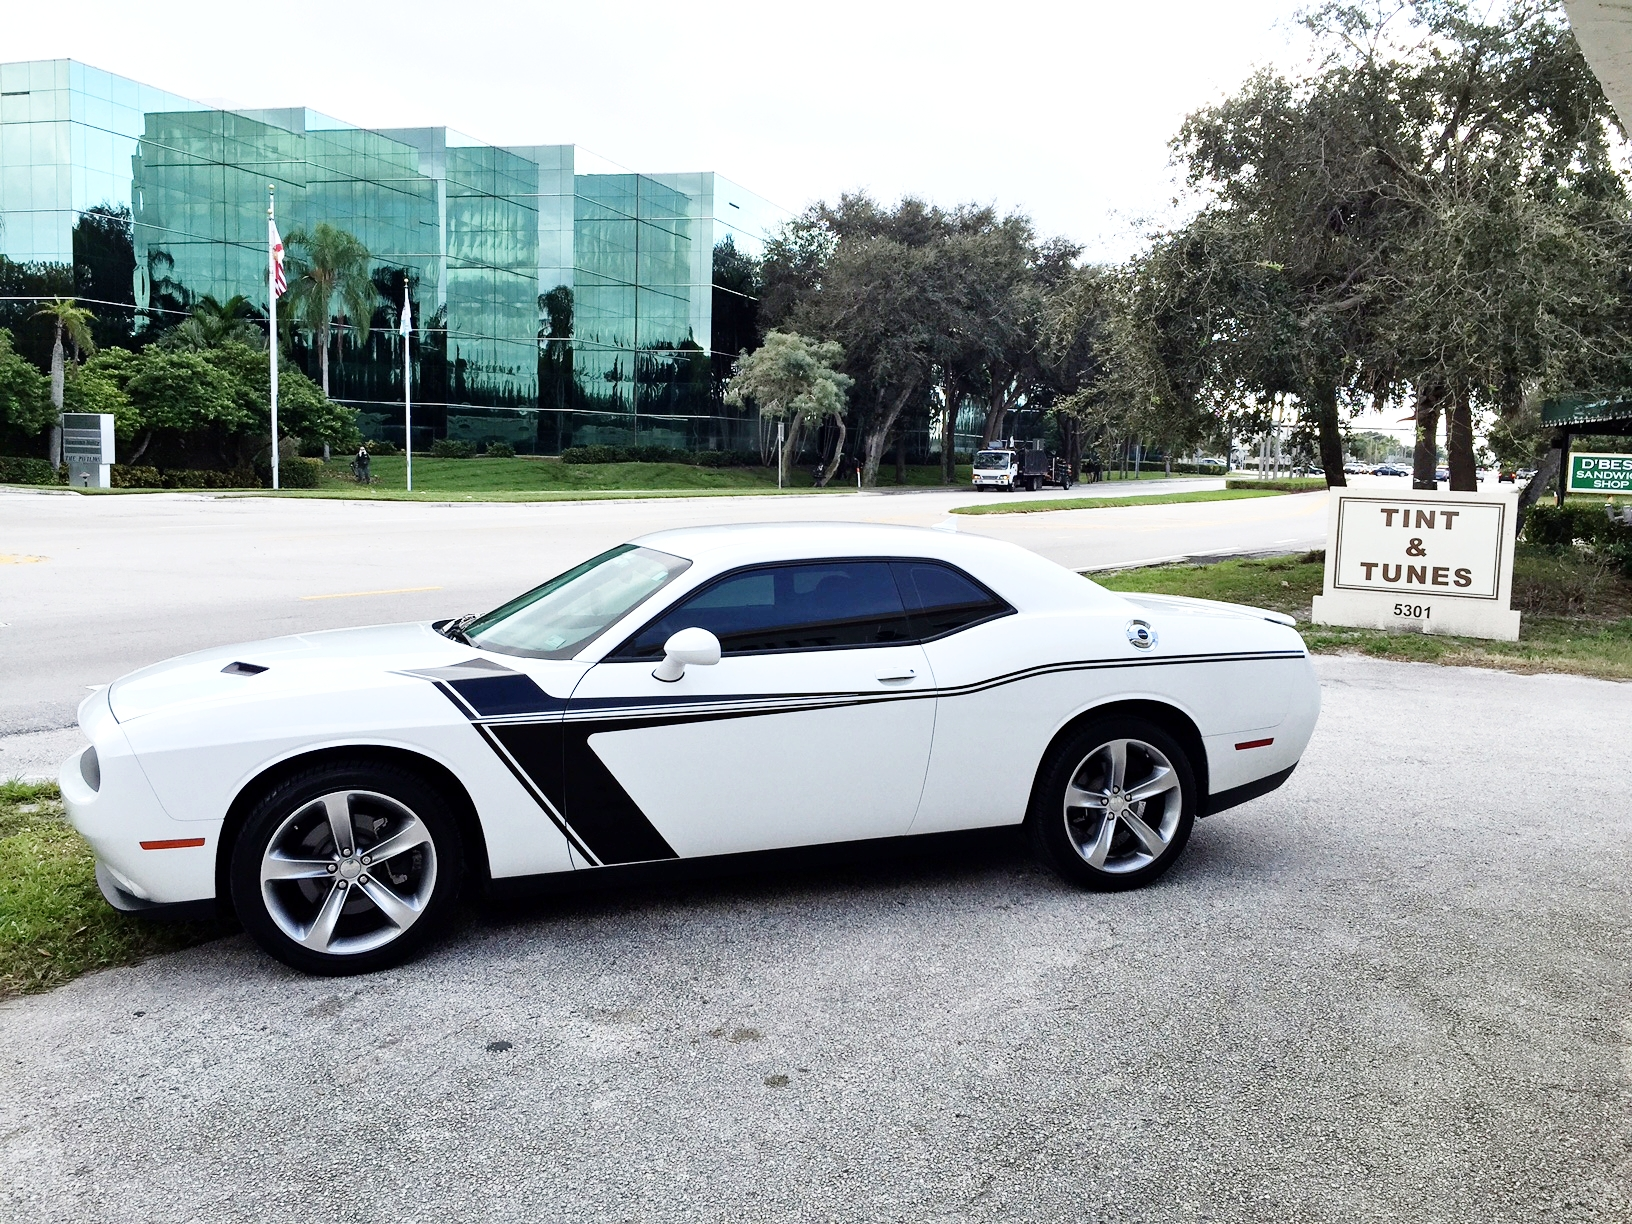 Call Tint & Tunes today! - Servicing South Florida since 1989